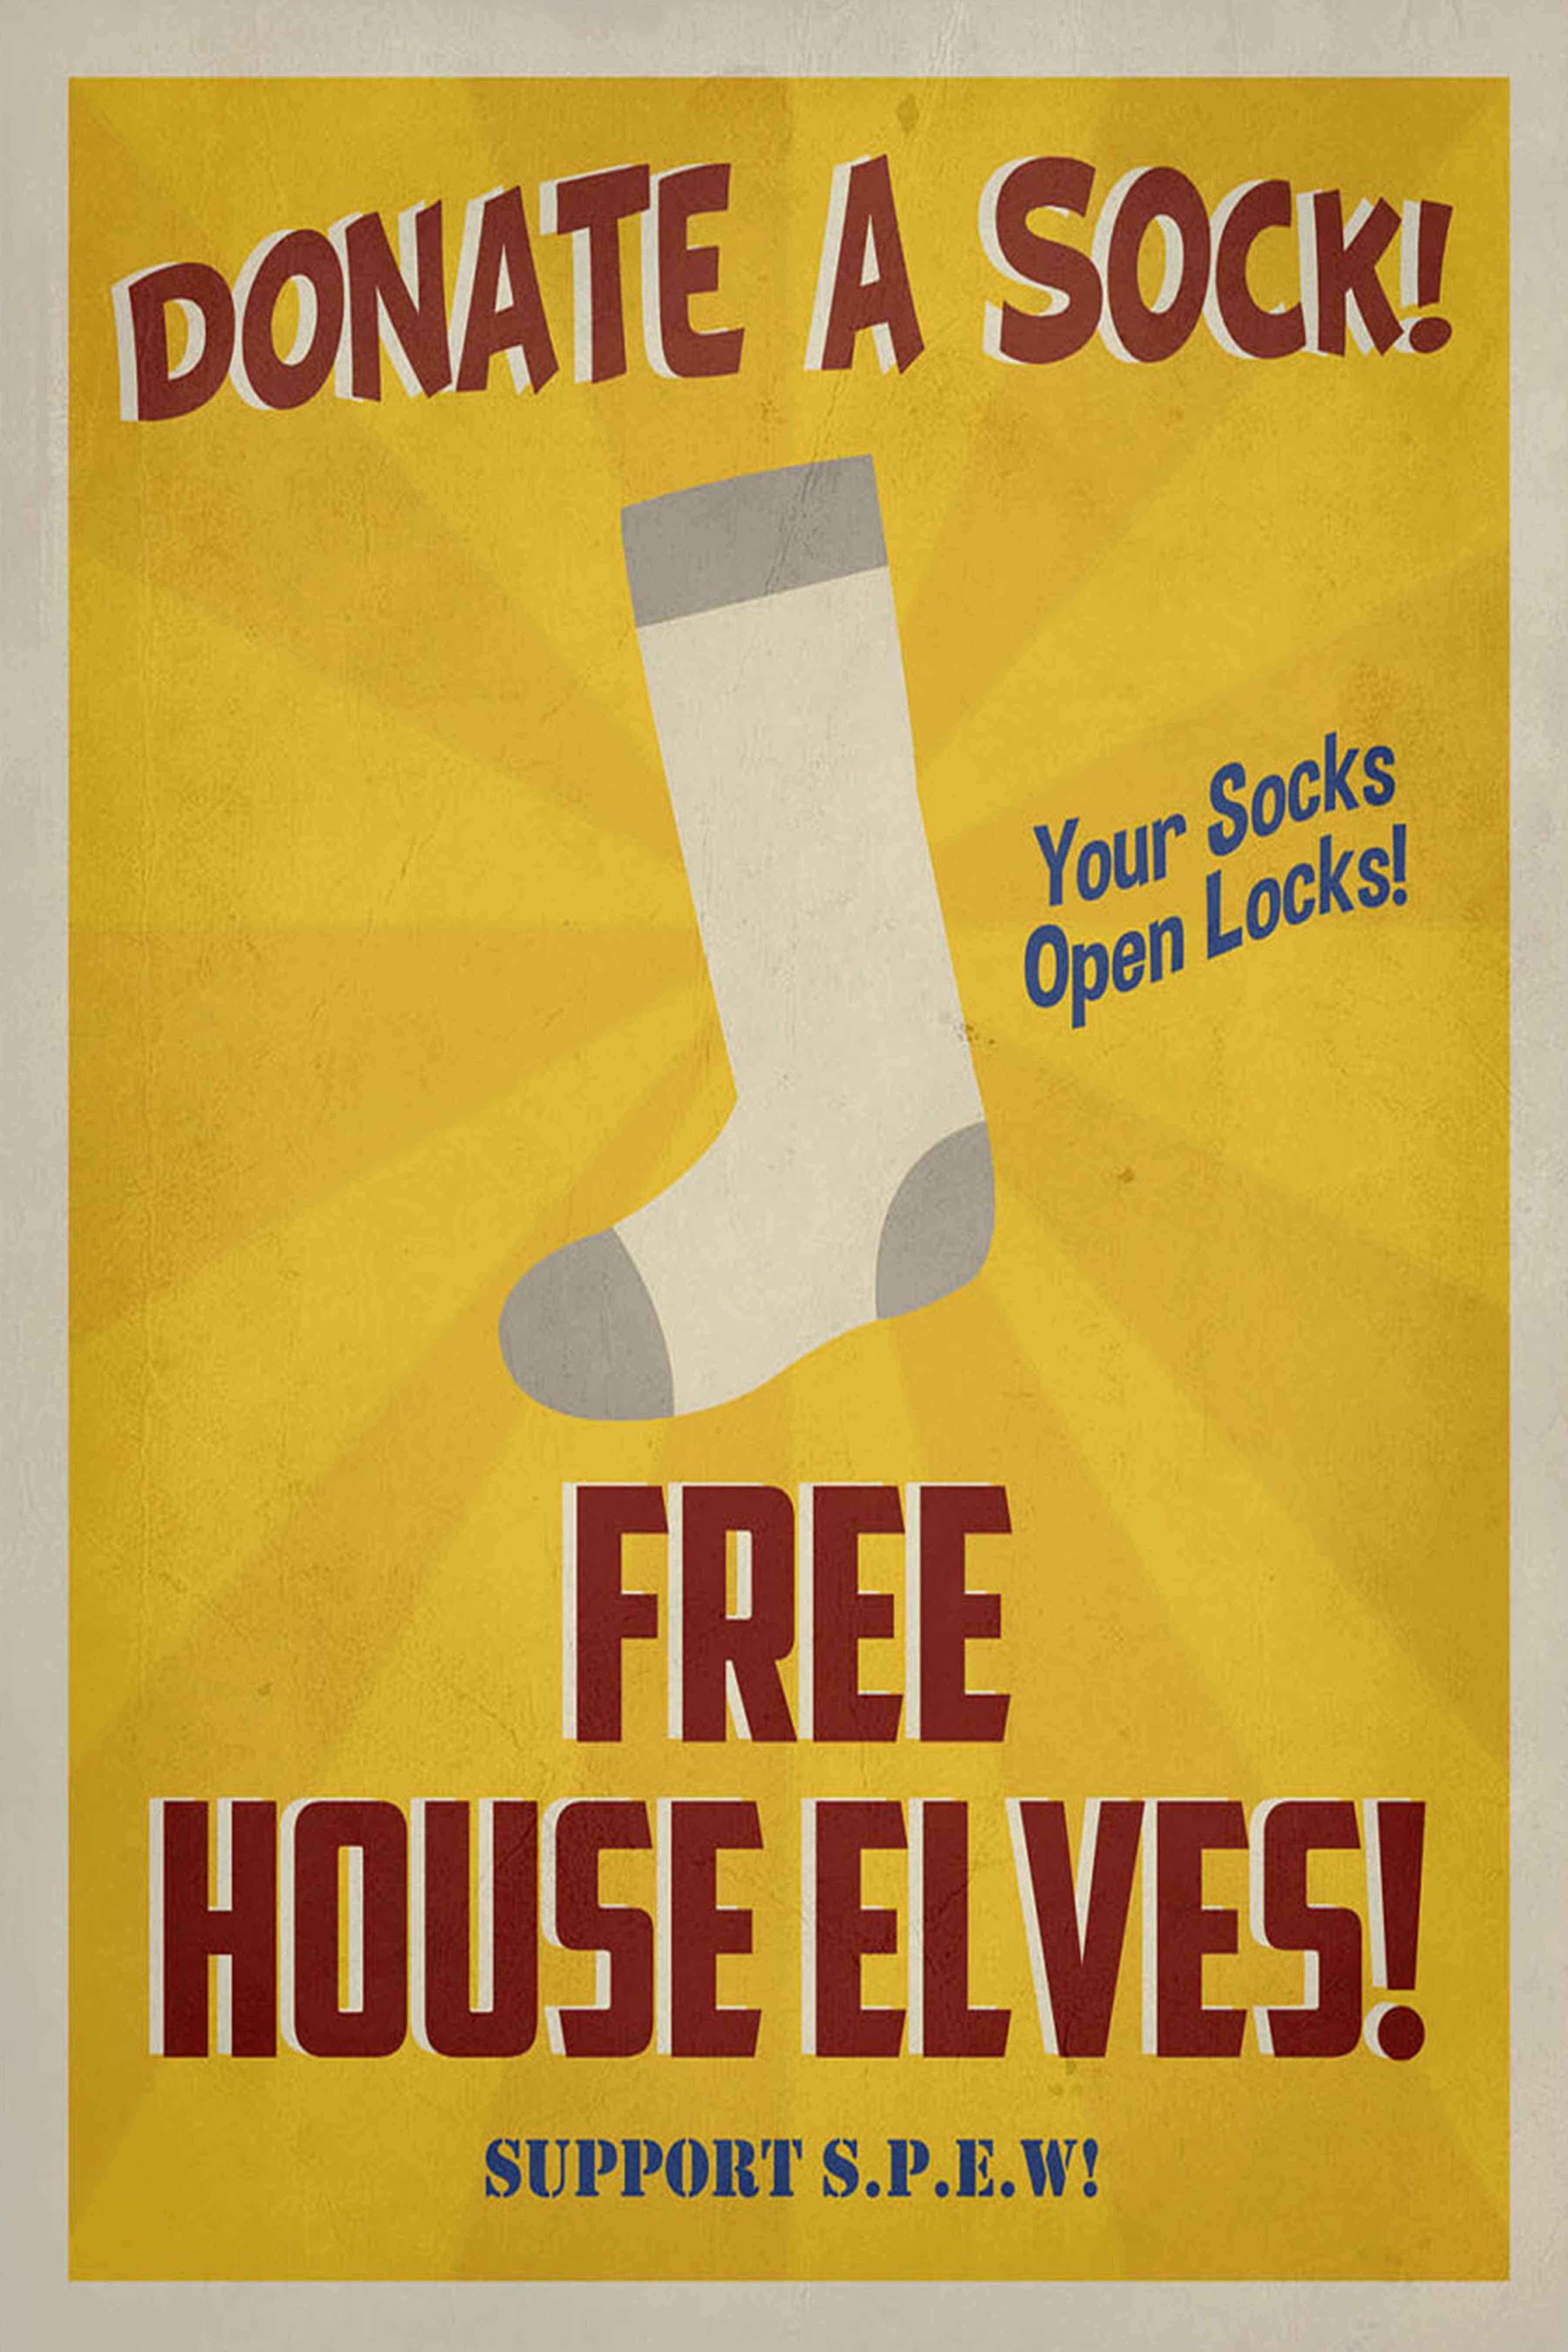 Laundry Posters Free Poster  Harry Potter Bday  Pinterest  Harry Potter